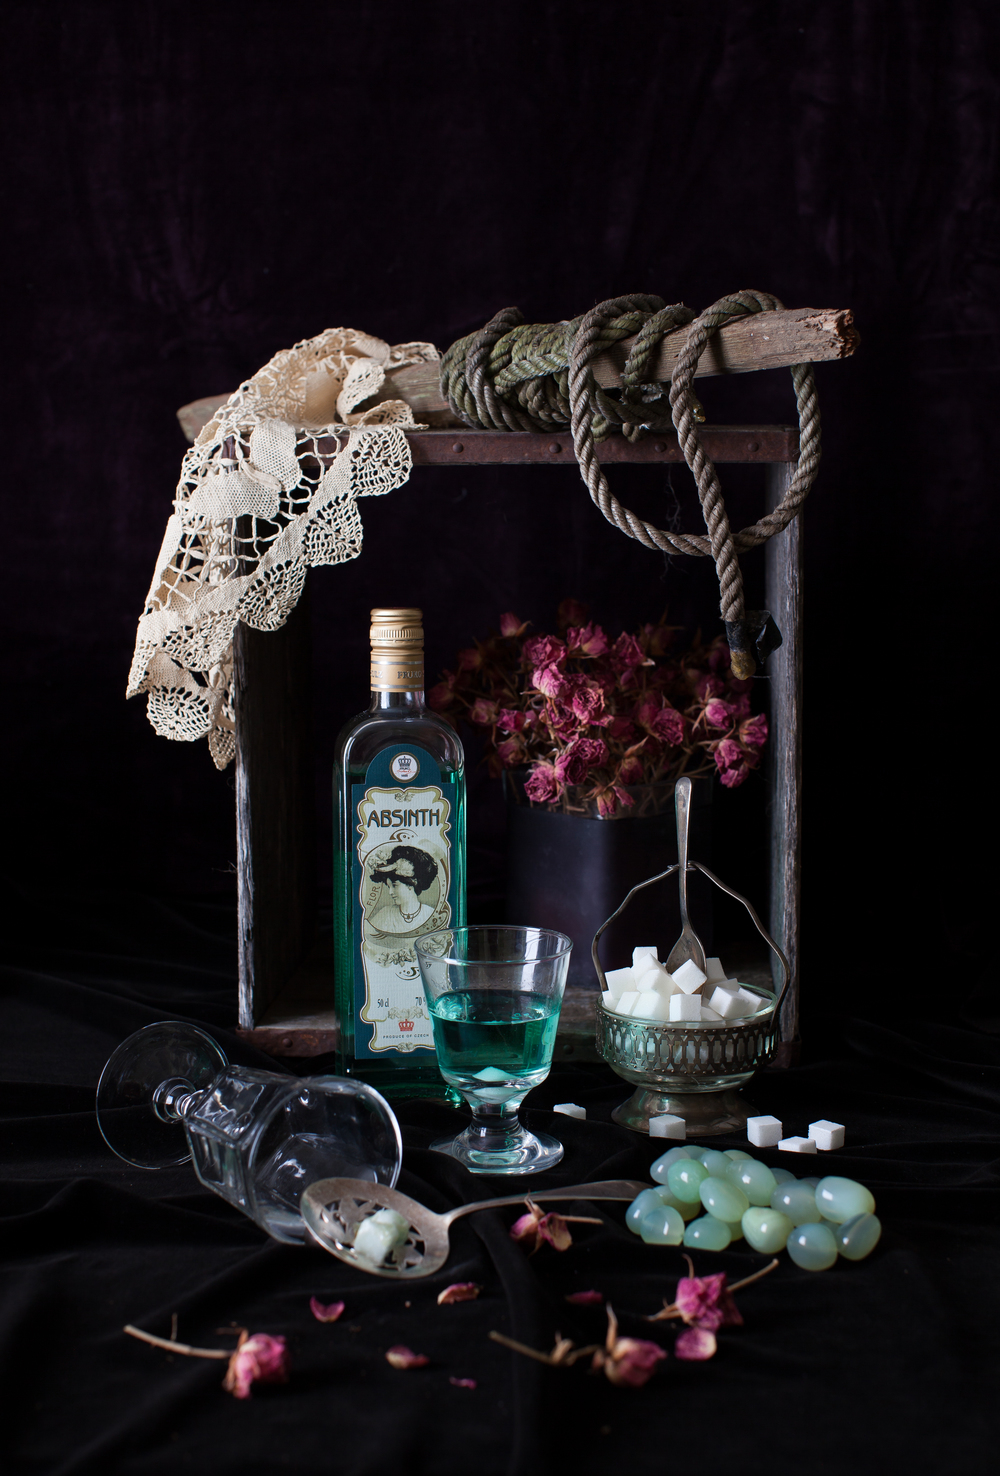 Still Life with Absinthe 2013